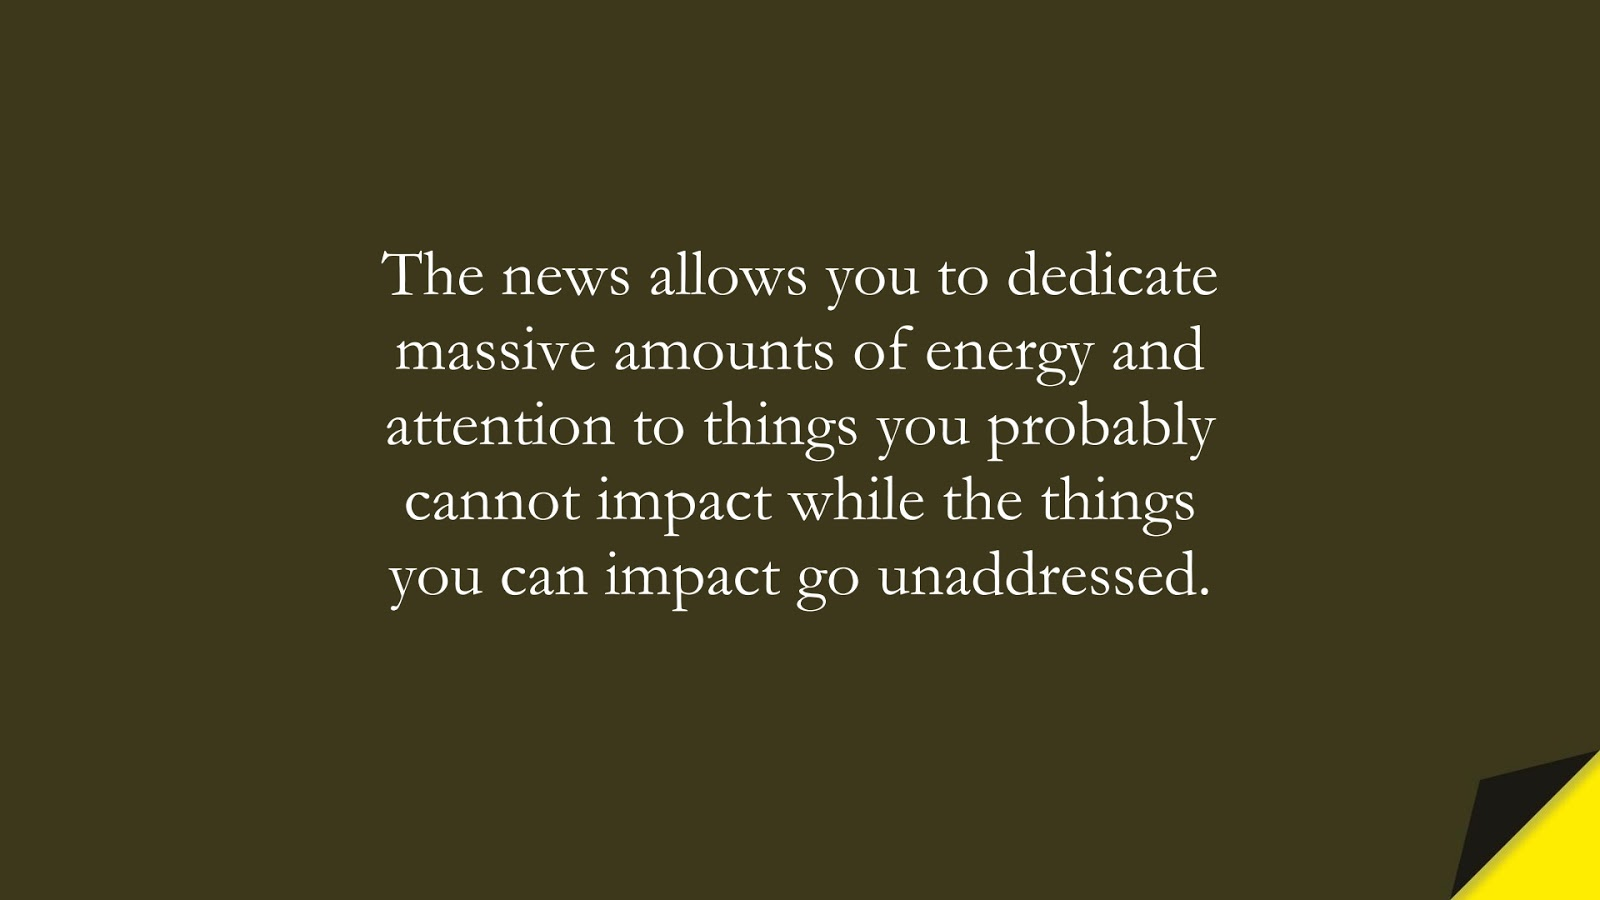 The news allows you to dedicate massive amounts of energy and attention to things you probably cannot impact while the things you can impact go unaddressed.FALSE